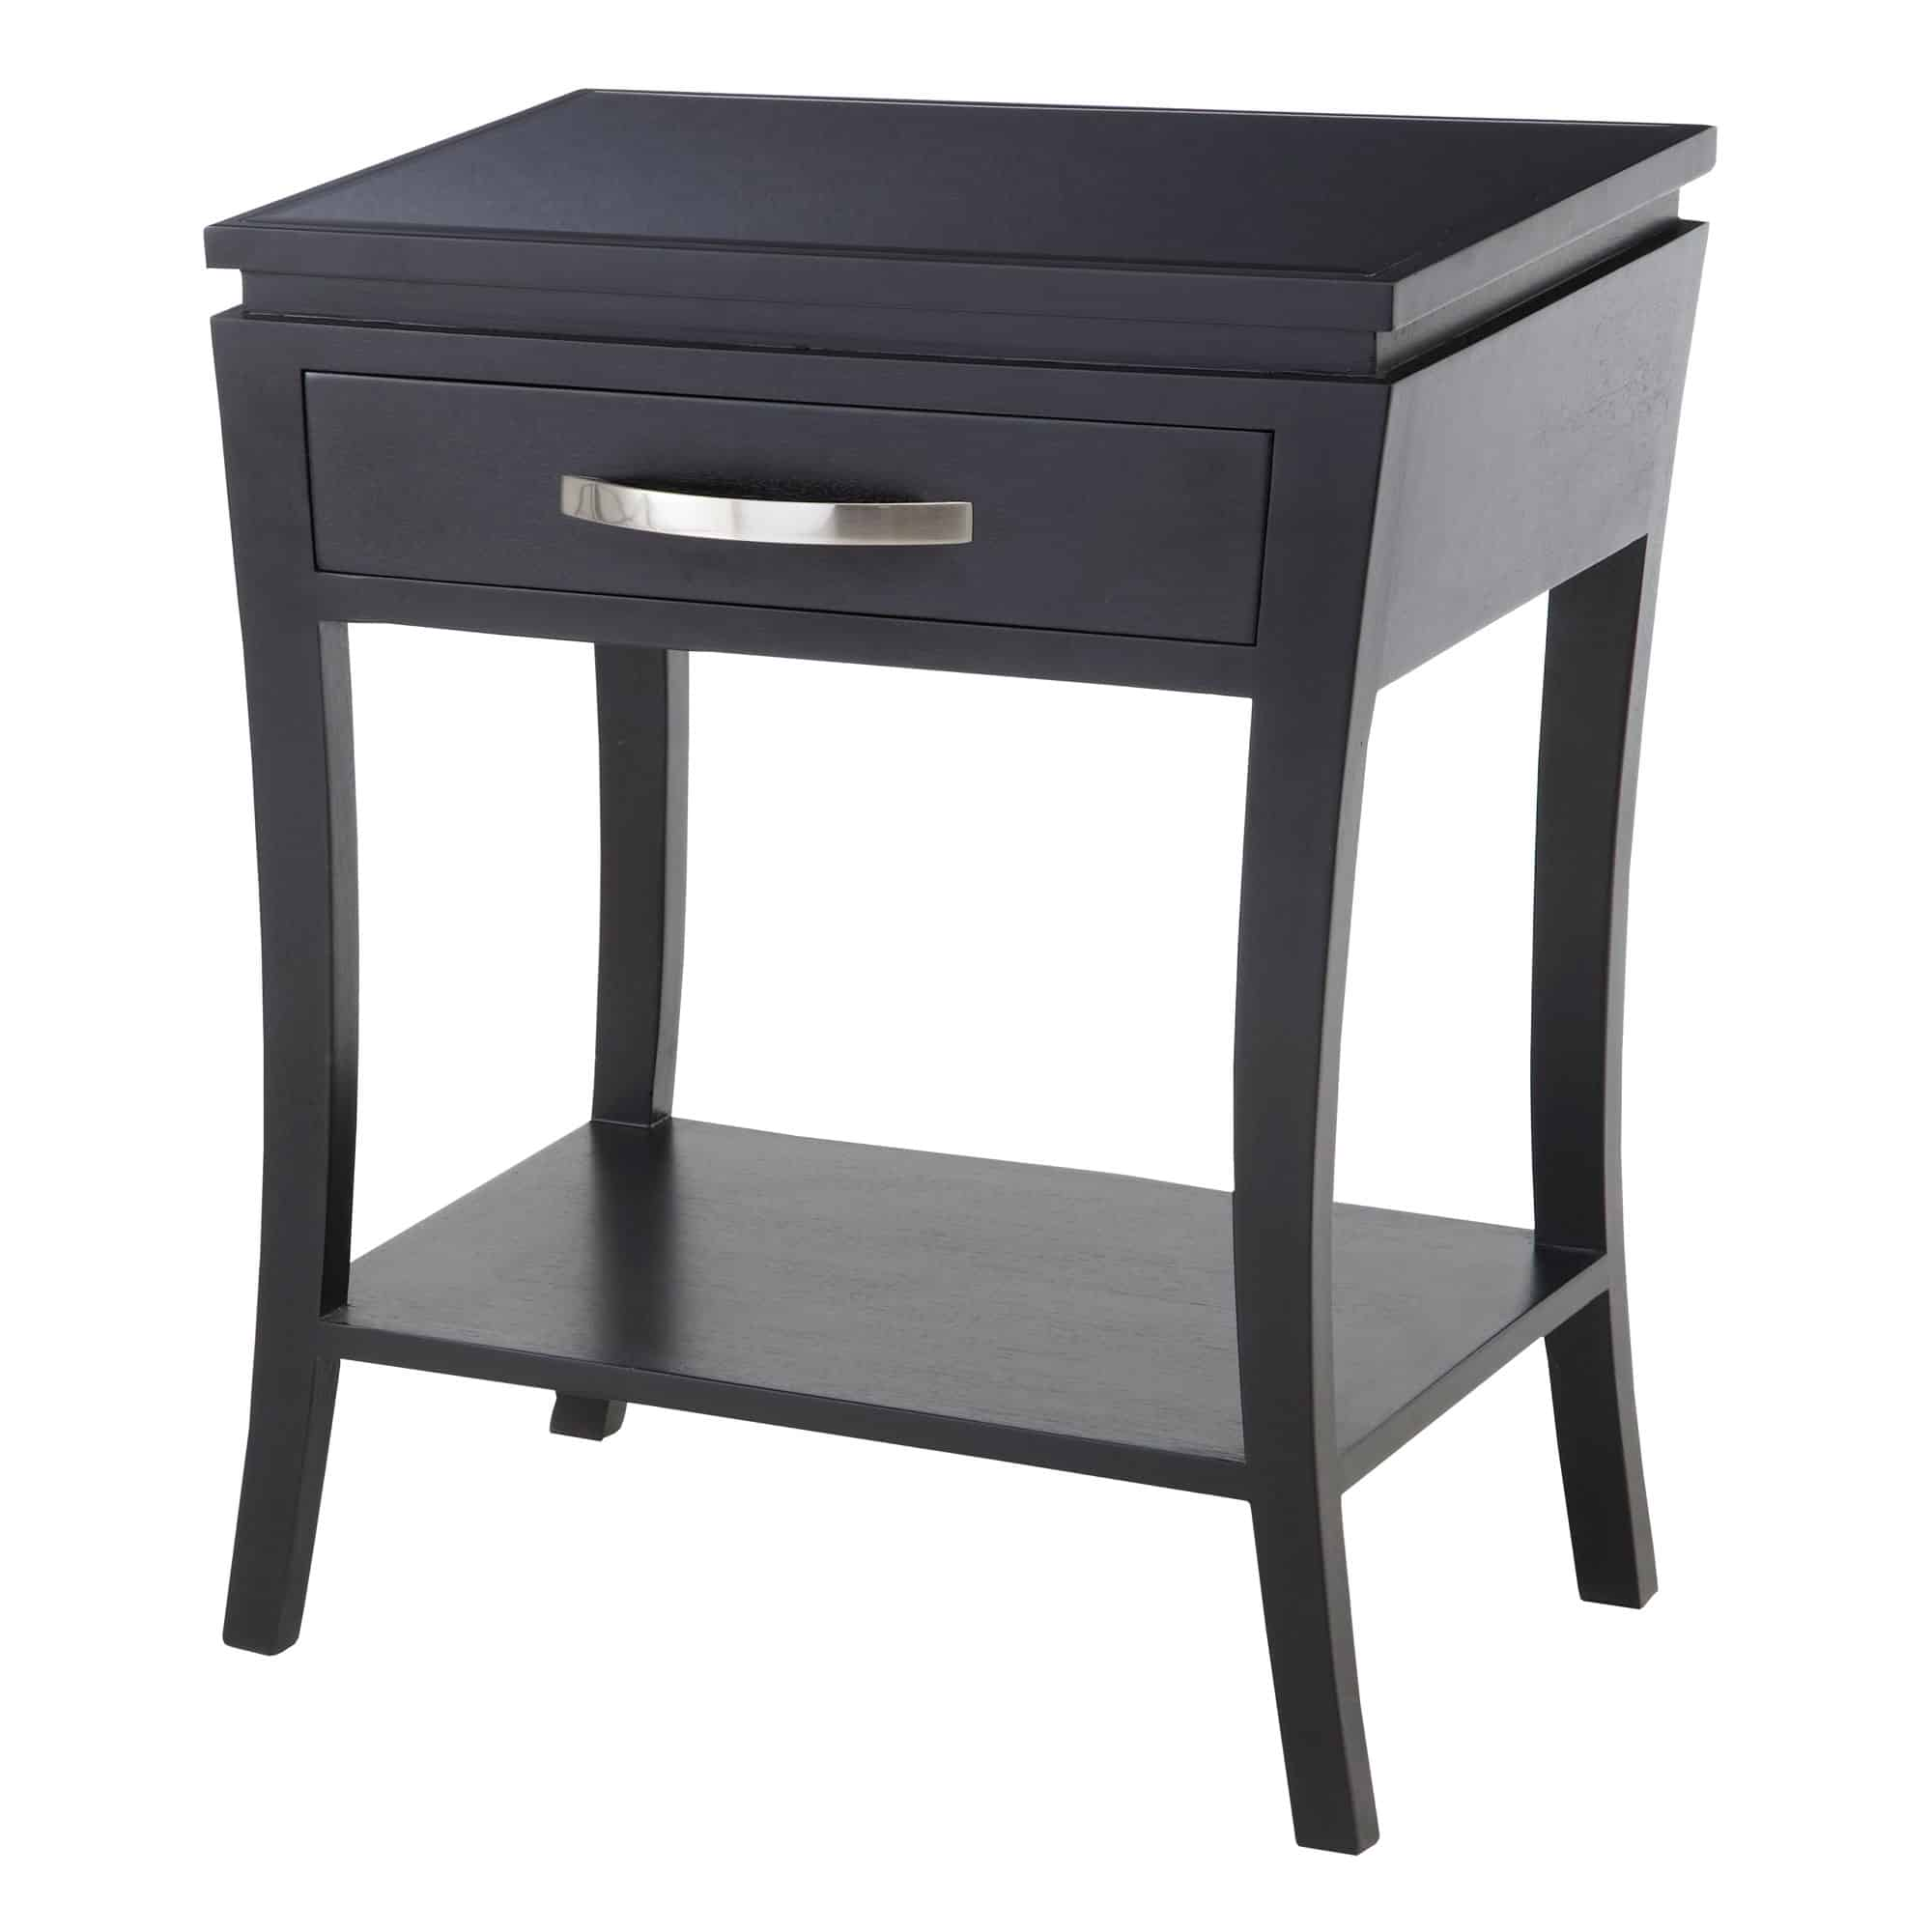 the modena single drawer side table